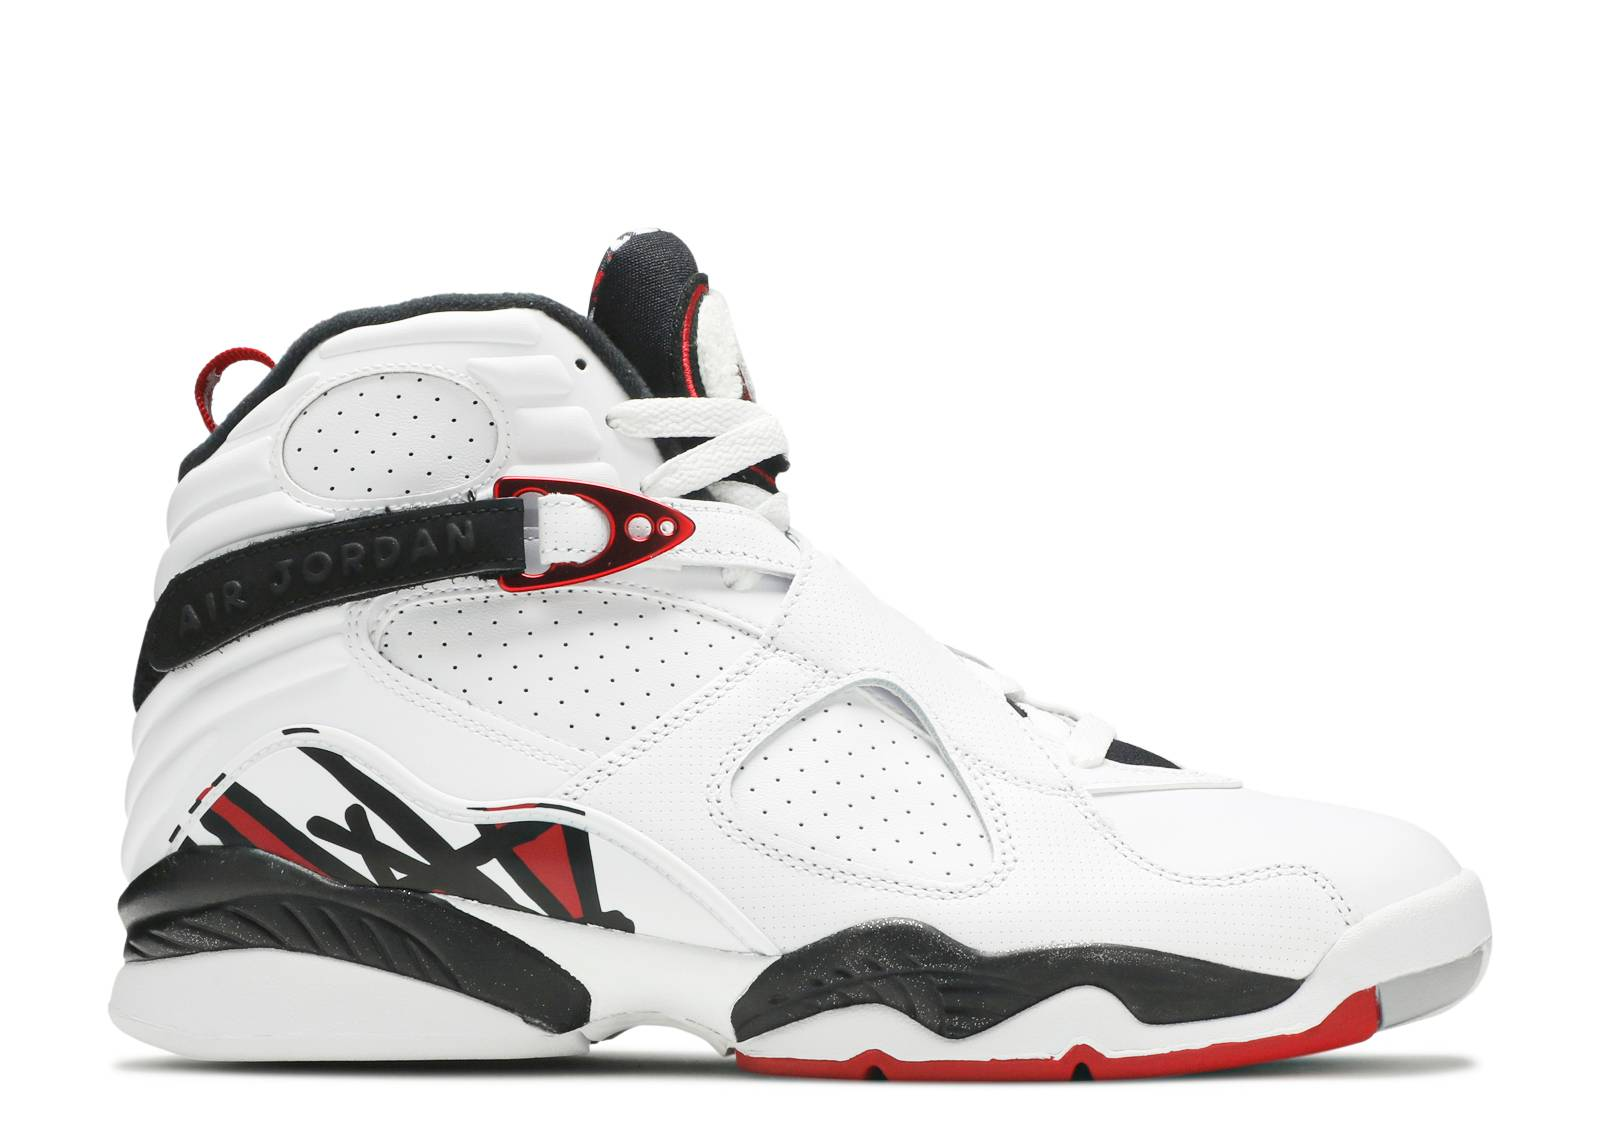 5a95529307dd14 Air Jordan 8 (VIII) Shoes - Nike